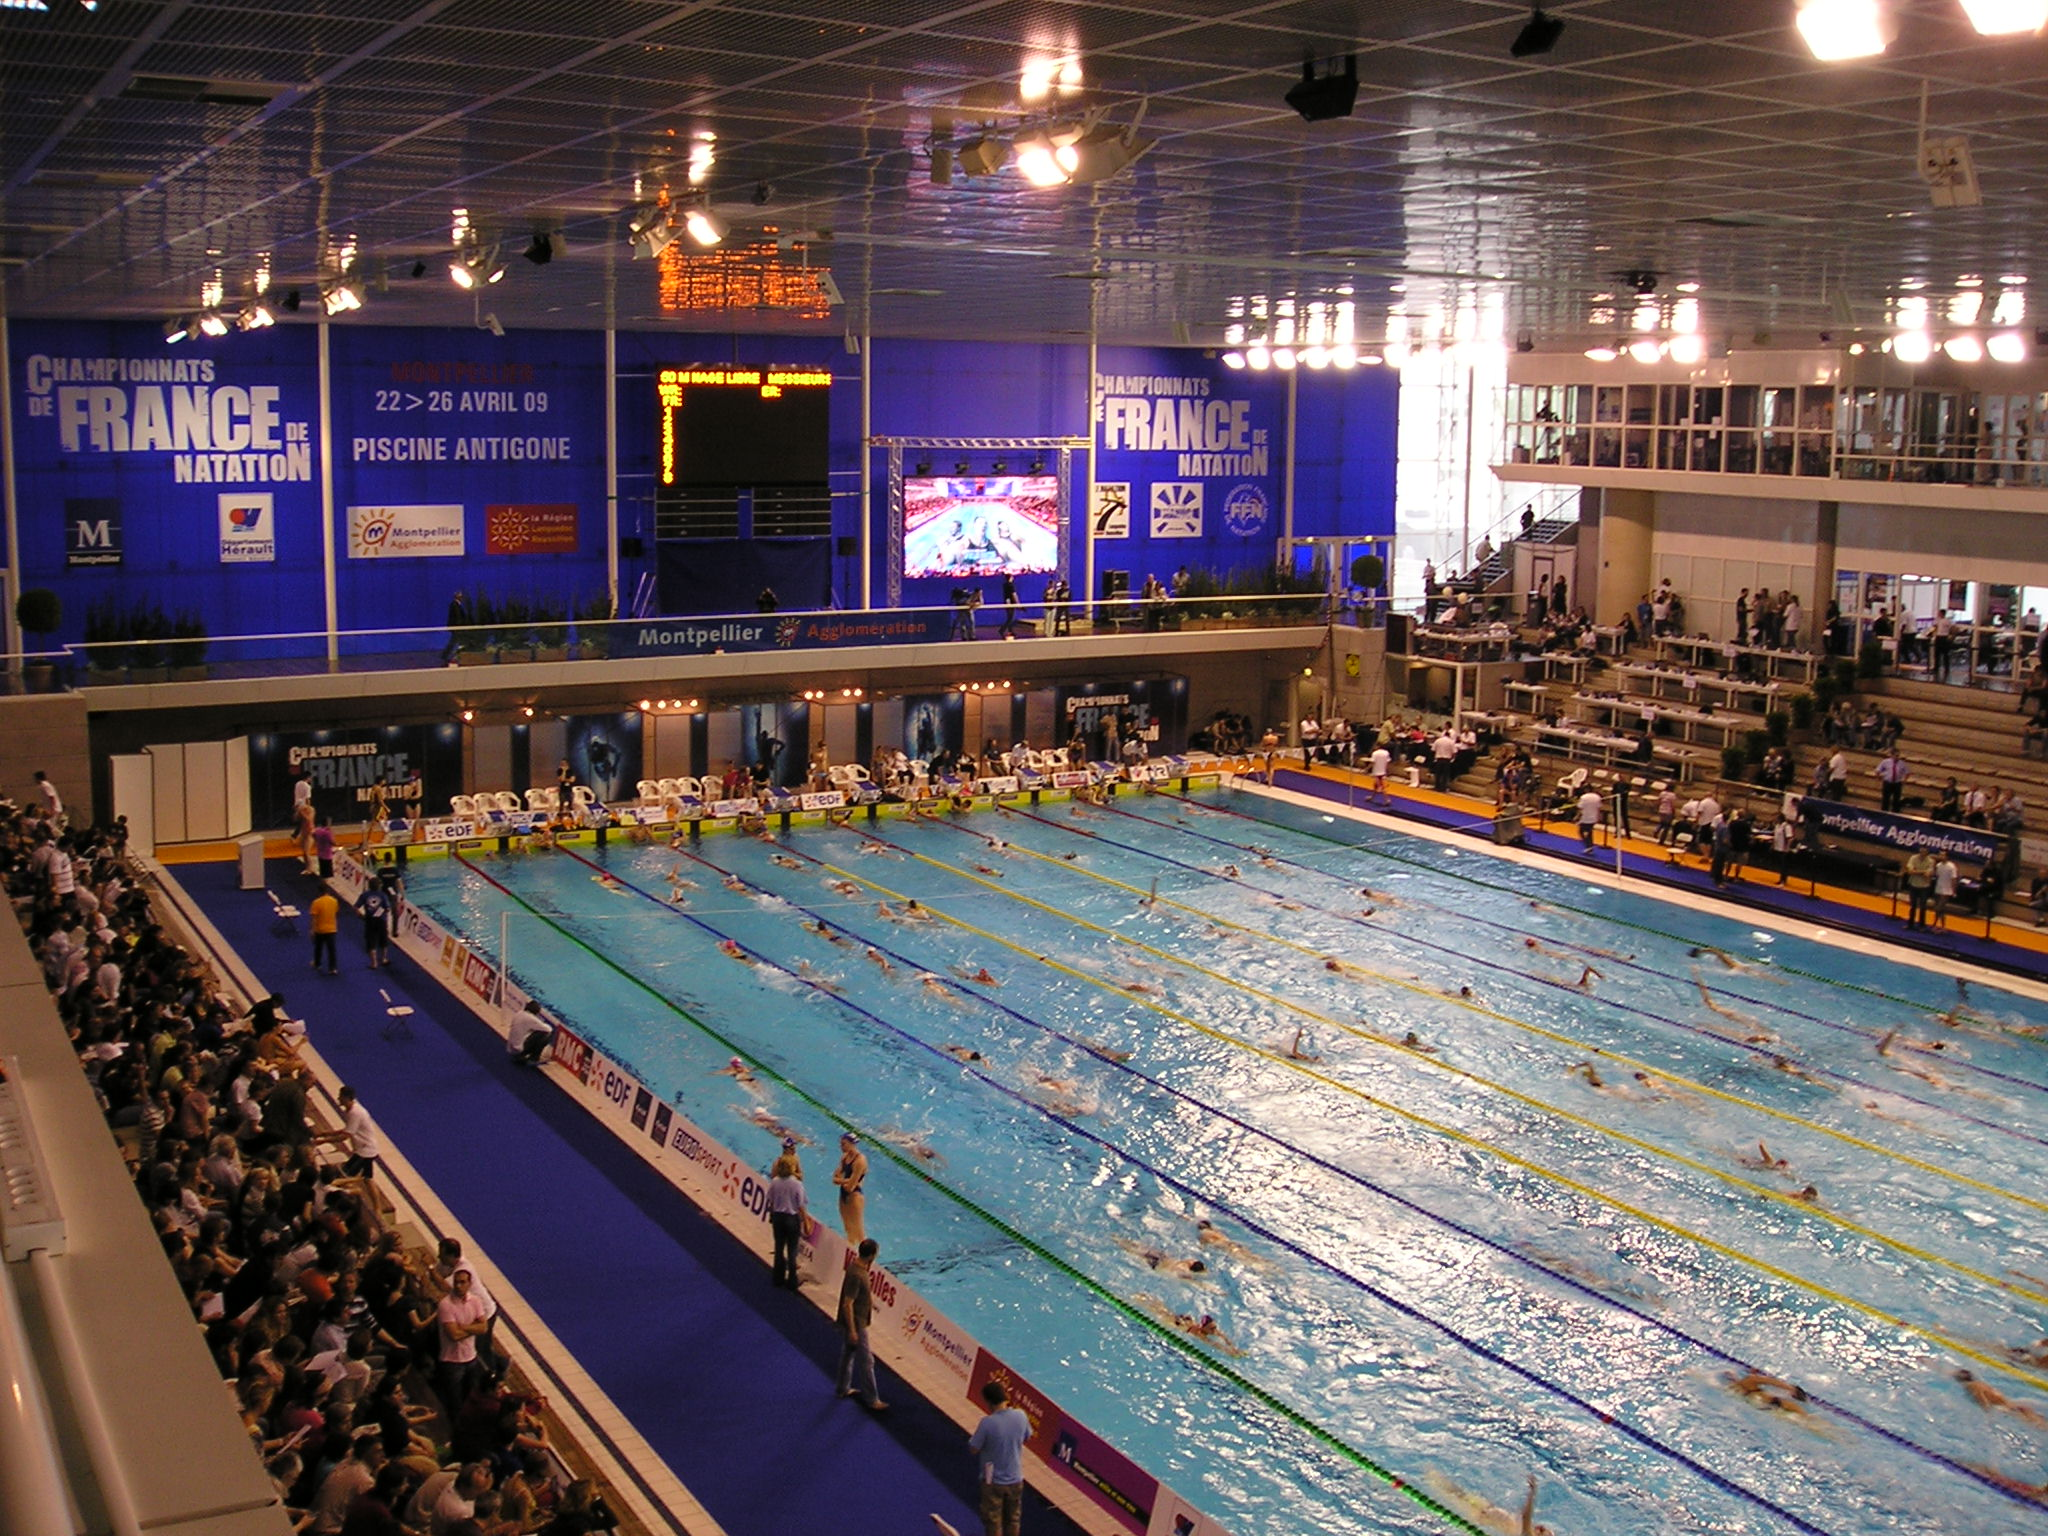 Montpellier piscine olympique d 39 antigone 2 000 piscines for Accouchement en piscine en france